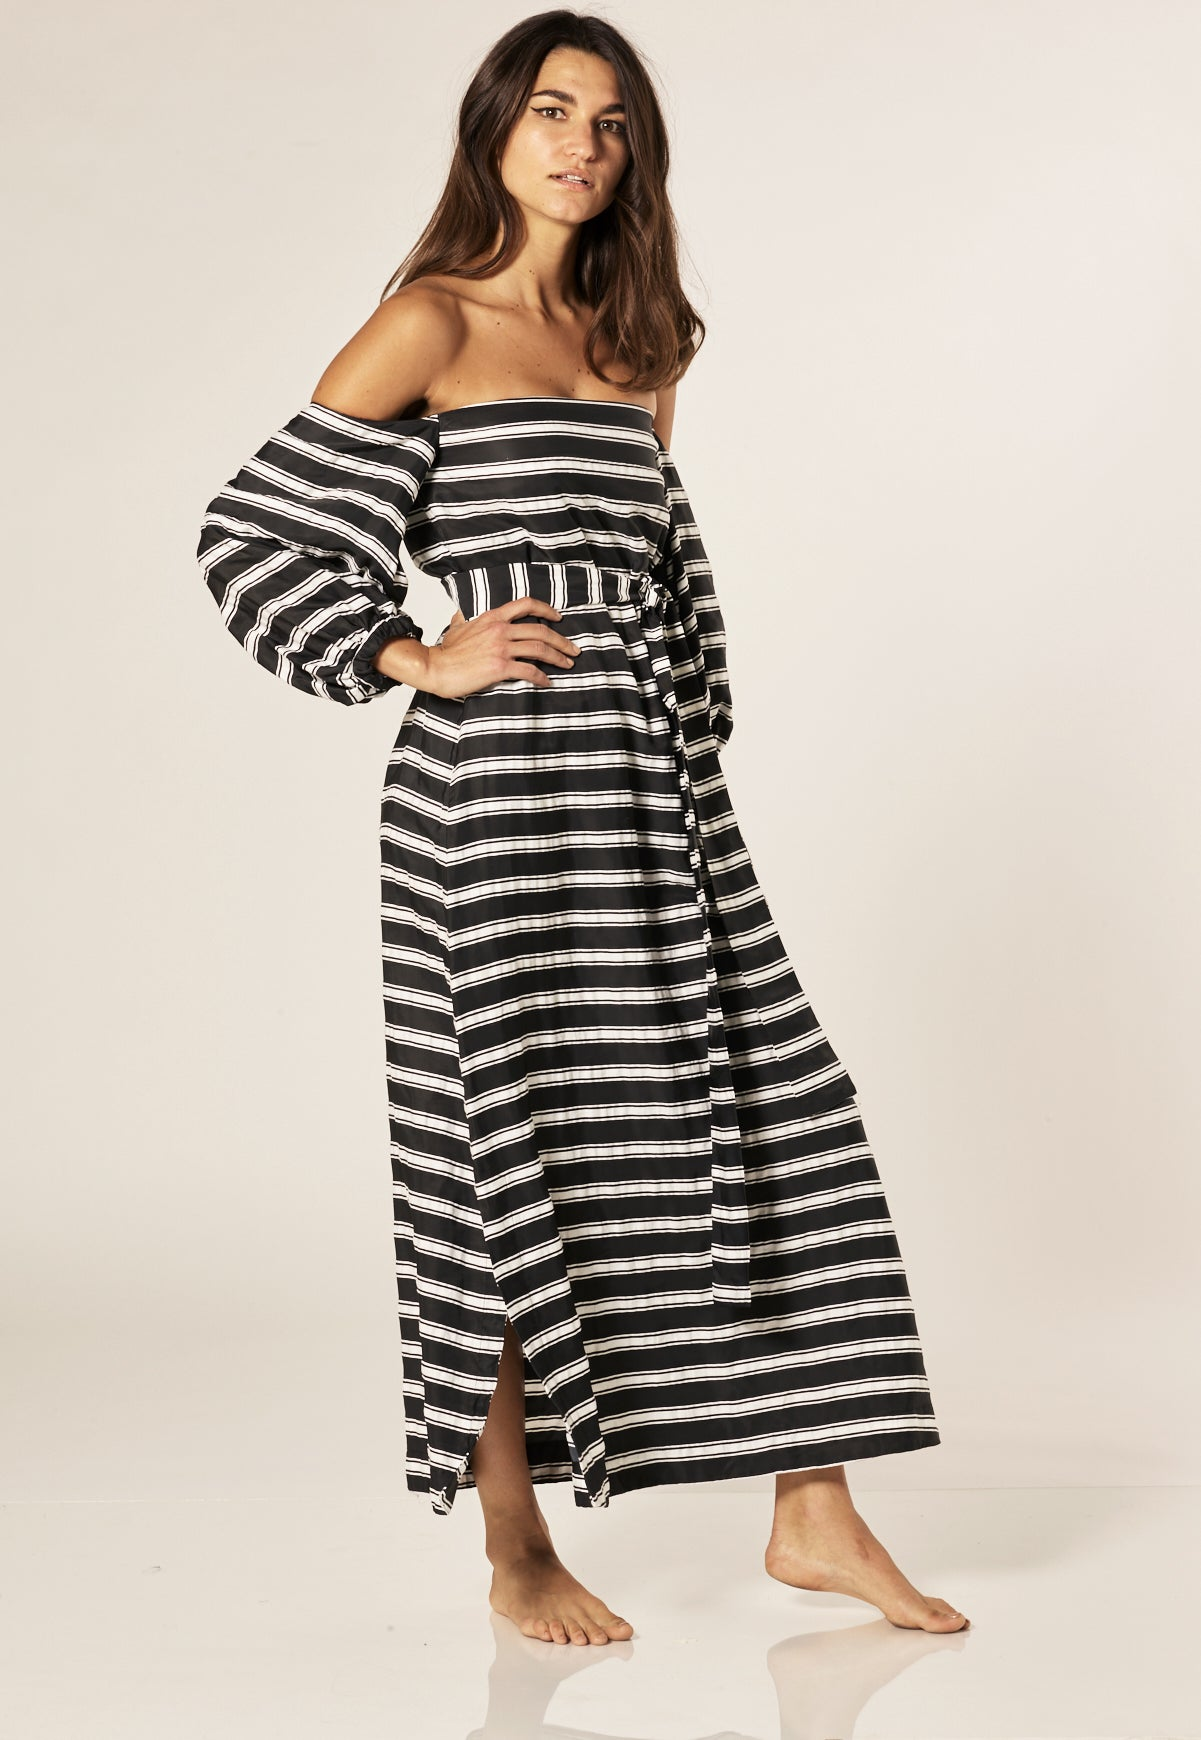 ROSIE BLACK STRIPED DRESS